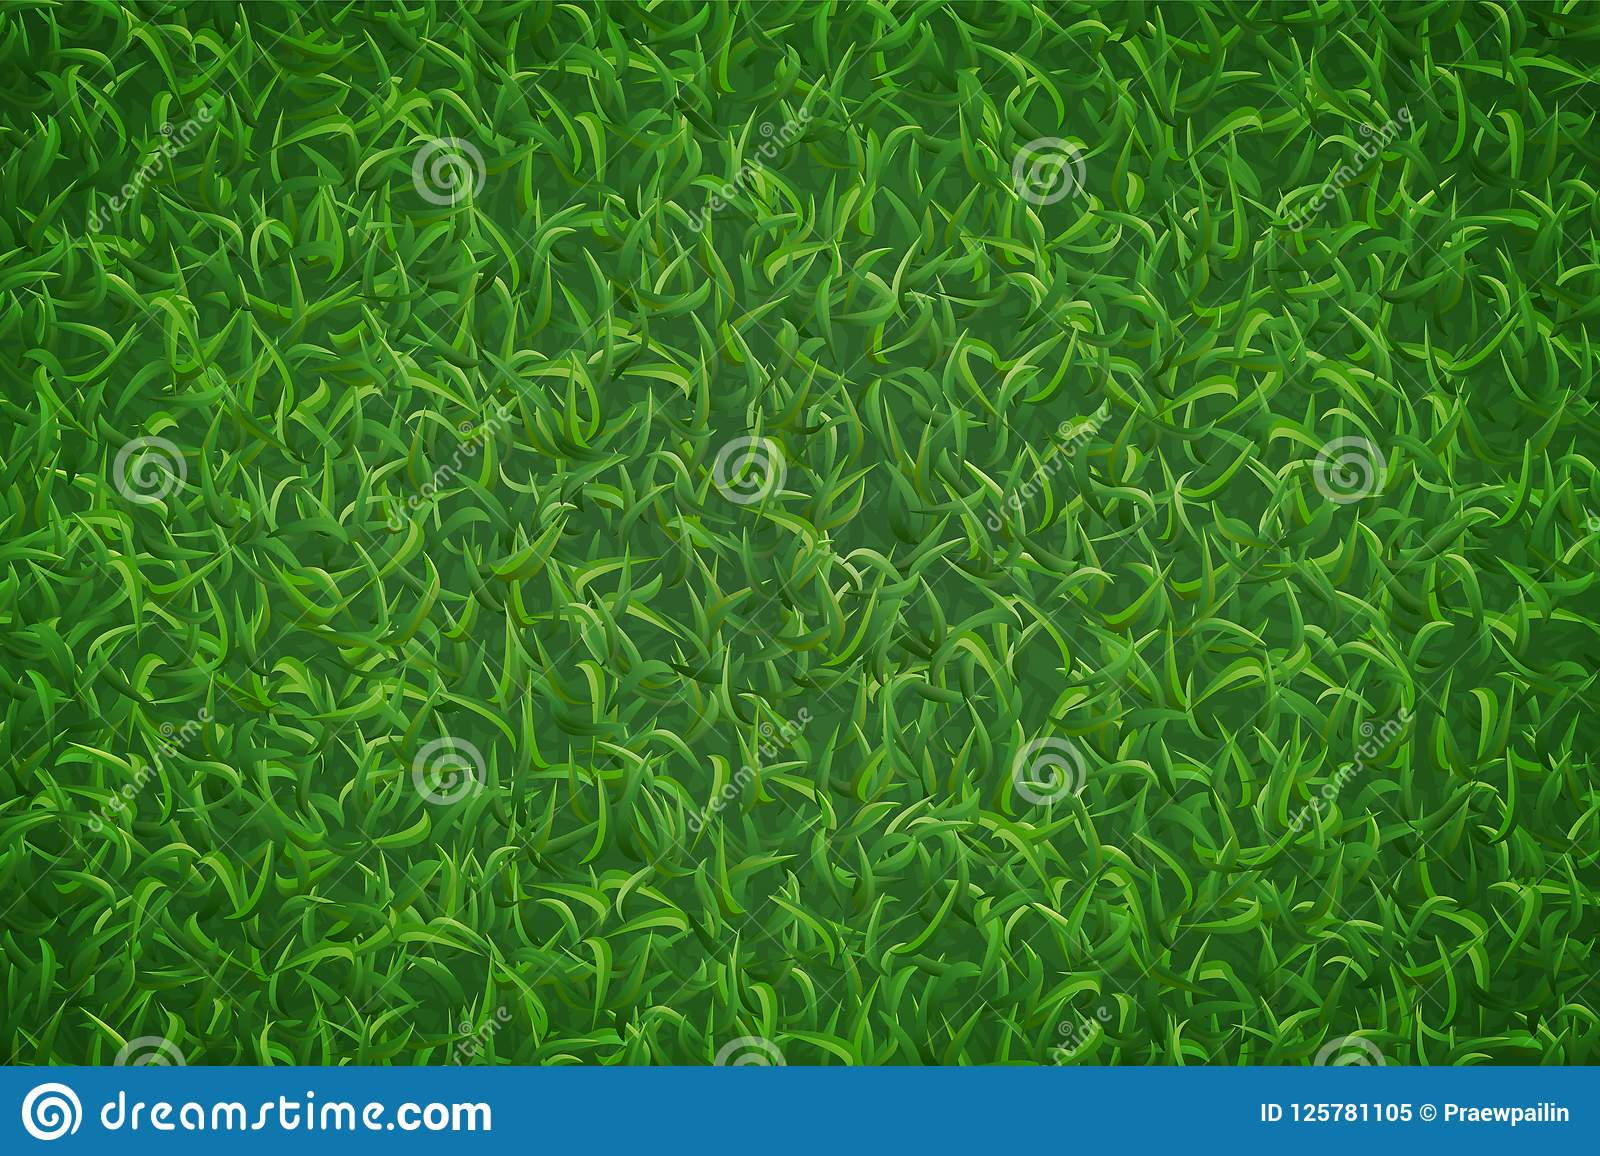 Lawn grass pattern and texture for background. Vector.